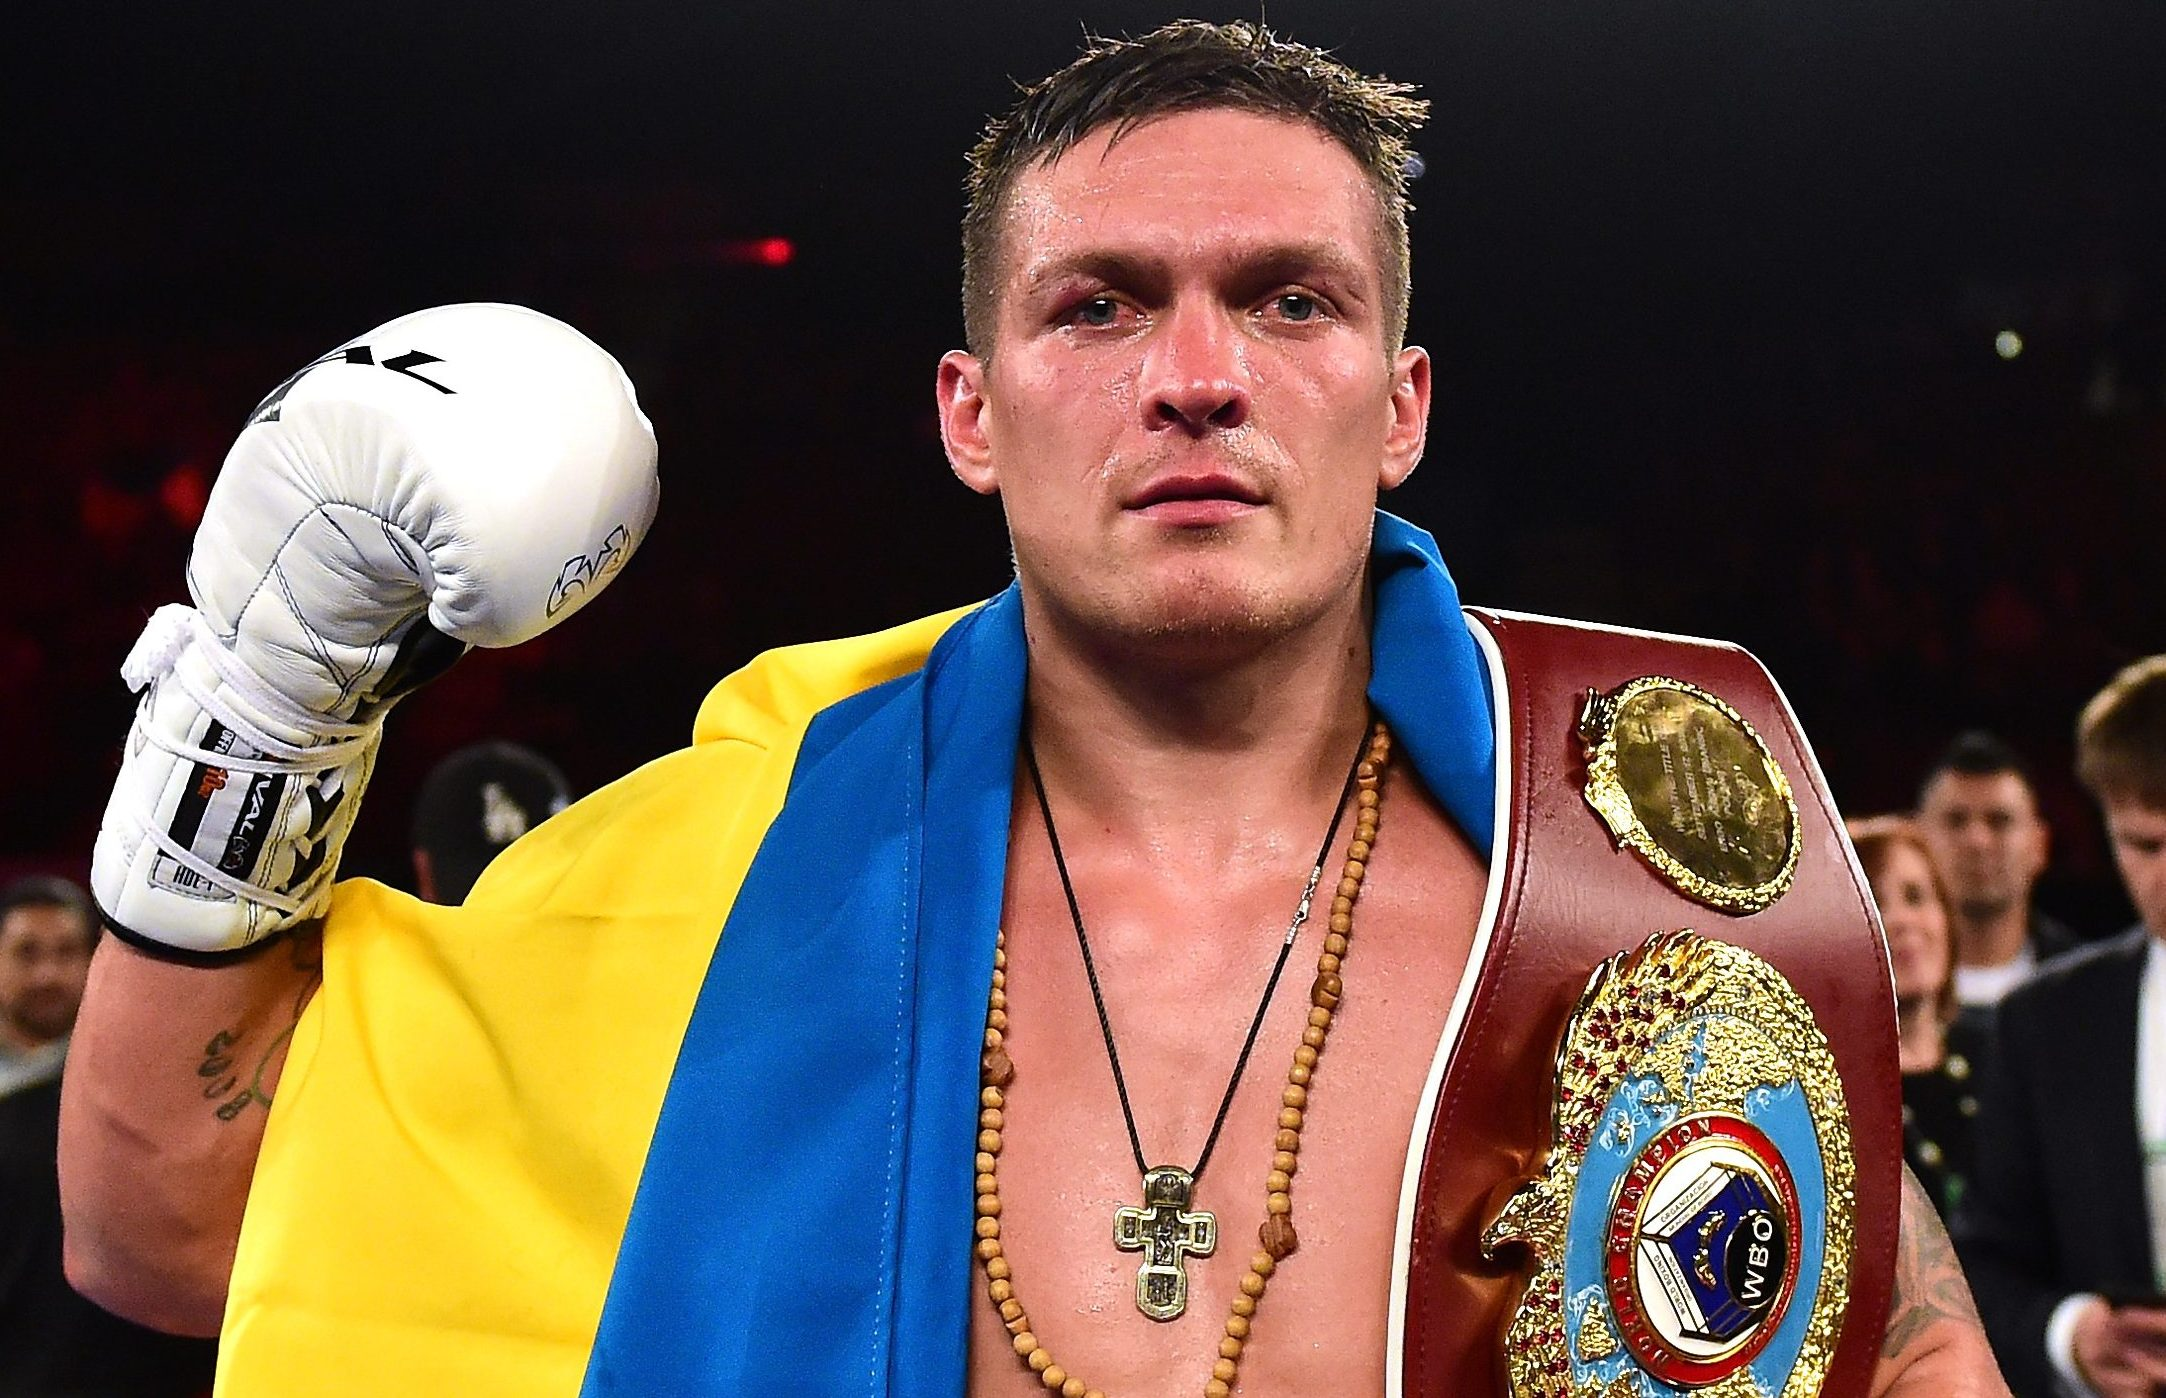 INGLEWOOD, CA - DECEMBER 17:  Oleksandr Usyk of the Ukraine poses with his belt after beating Thabiso Mchunu of South Africa to win the WBO Cruiserweight title at The Forum on December 17, 2016 in Inglewood, California.  (Photo by Harry How/Getty Images)